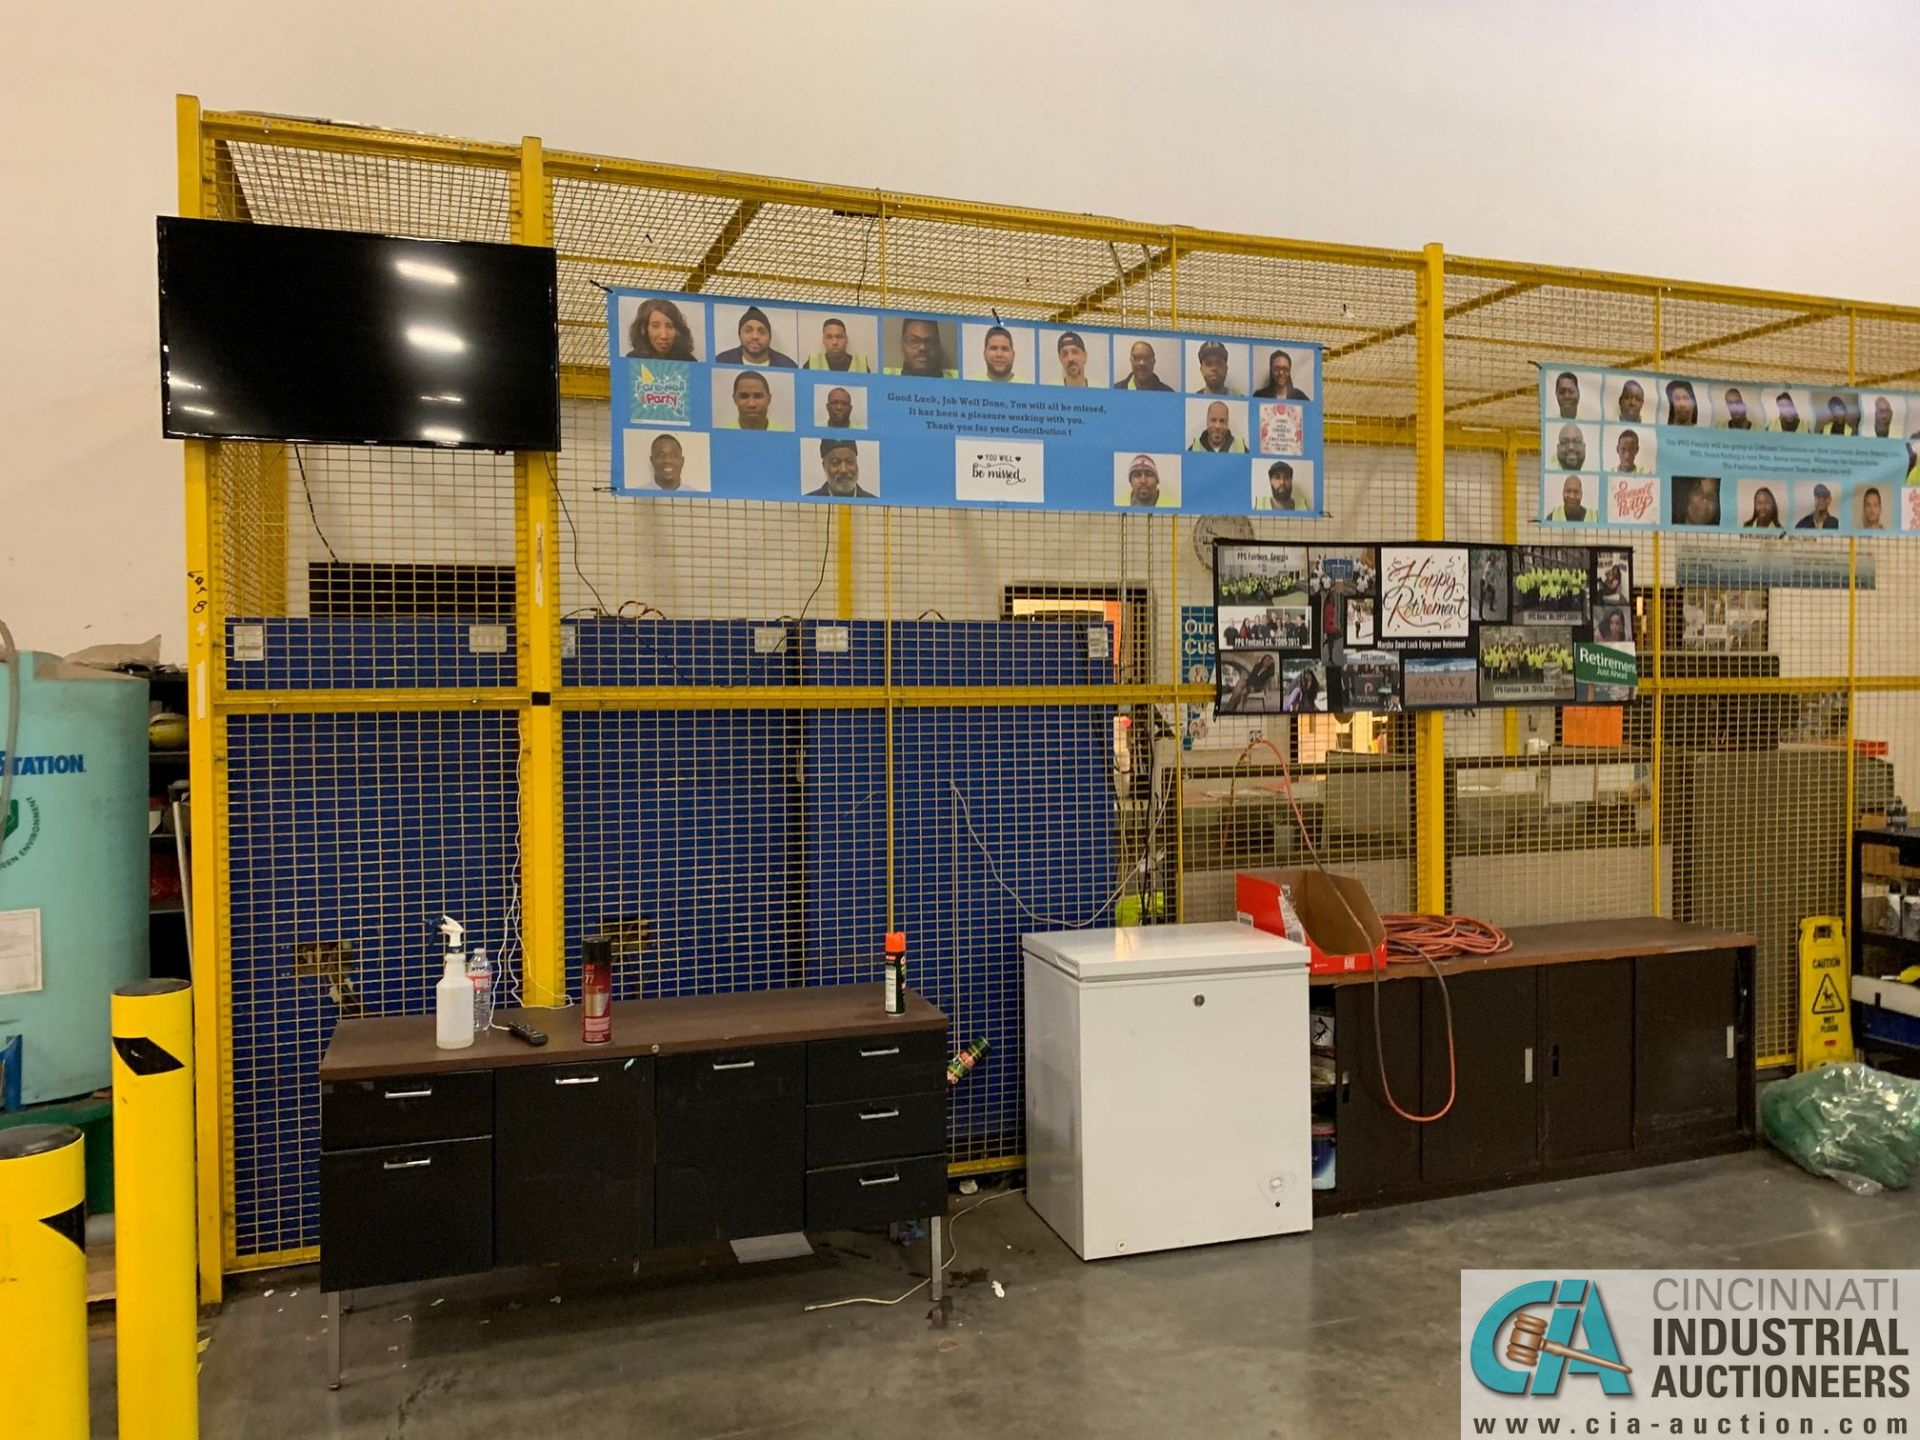 SAFETY CAGE - FRONT DRIVERS (5400 OAKLEY INDUSTRIAL BLVD., FAIRBURN, GA 30213) - Image 2 of 6